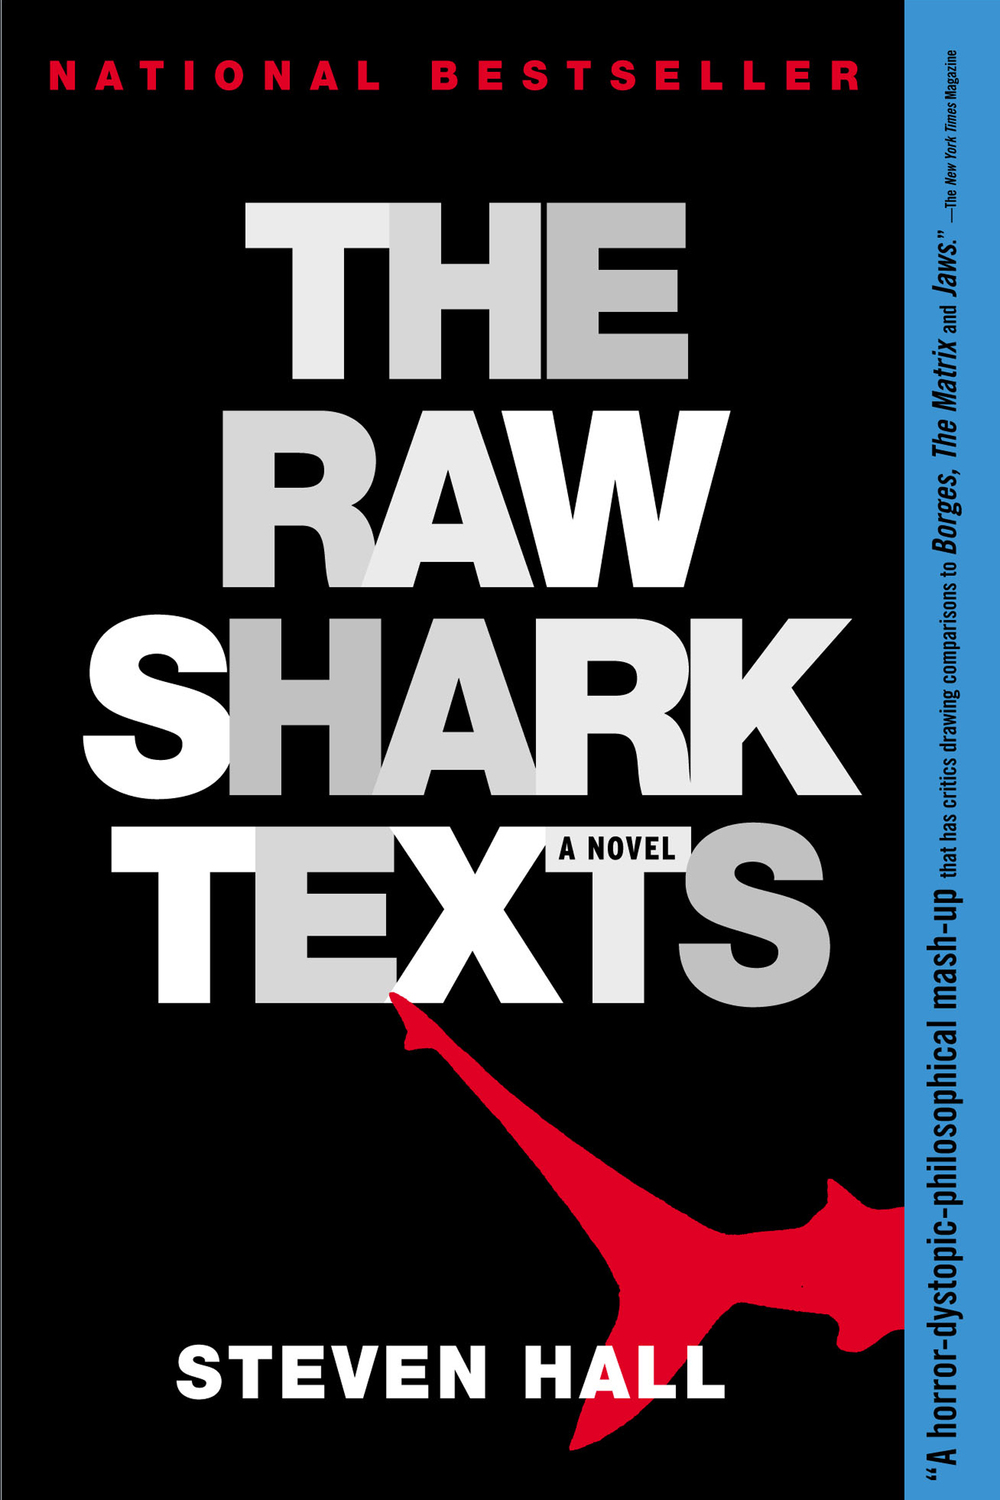 THE-RAW-SHARK-TEXTS-ss6.jpg